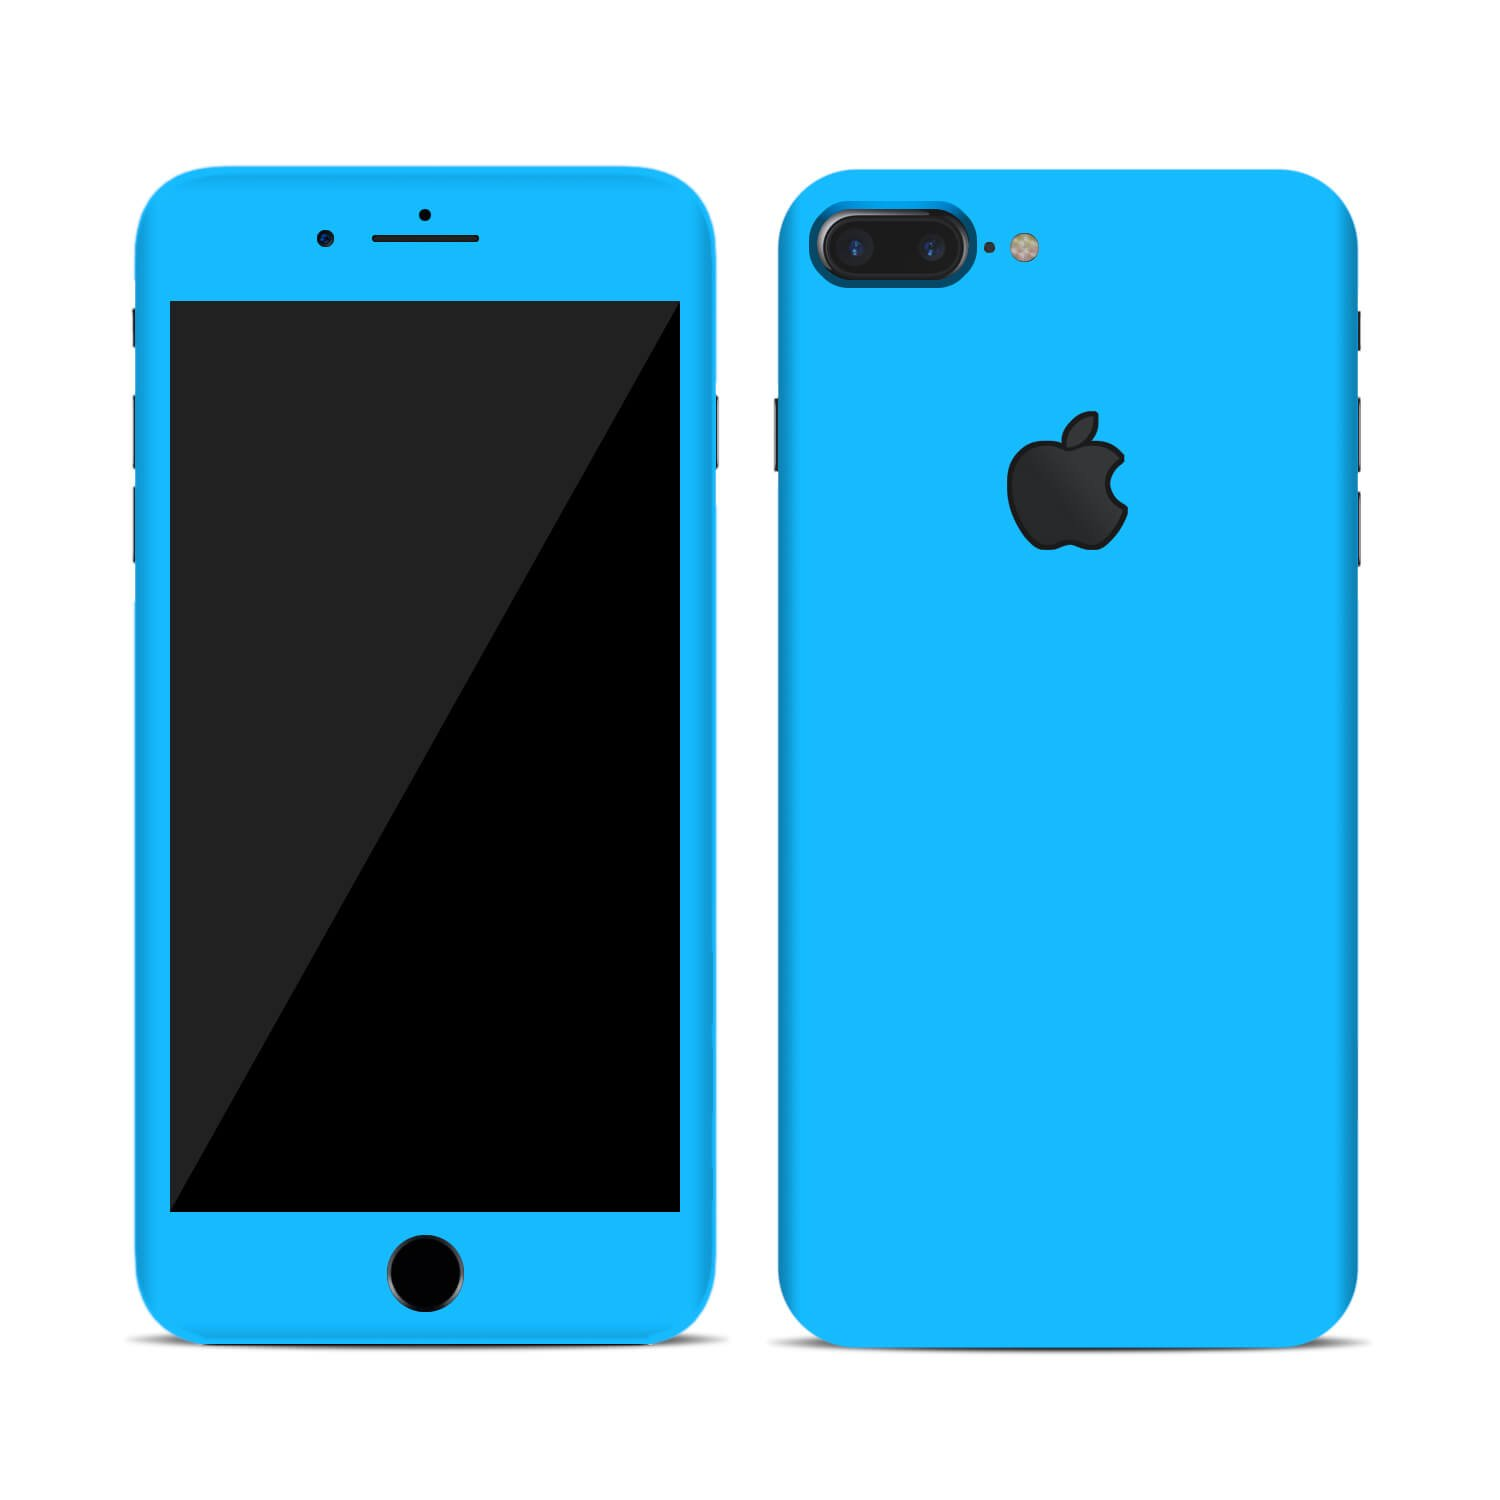 iphone 7, brushed light blue metal plus Full Body Wrap SmartSkins Textured skin sticker for iPhone 7 /& 7